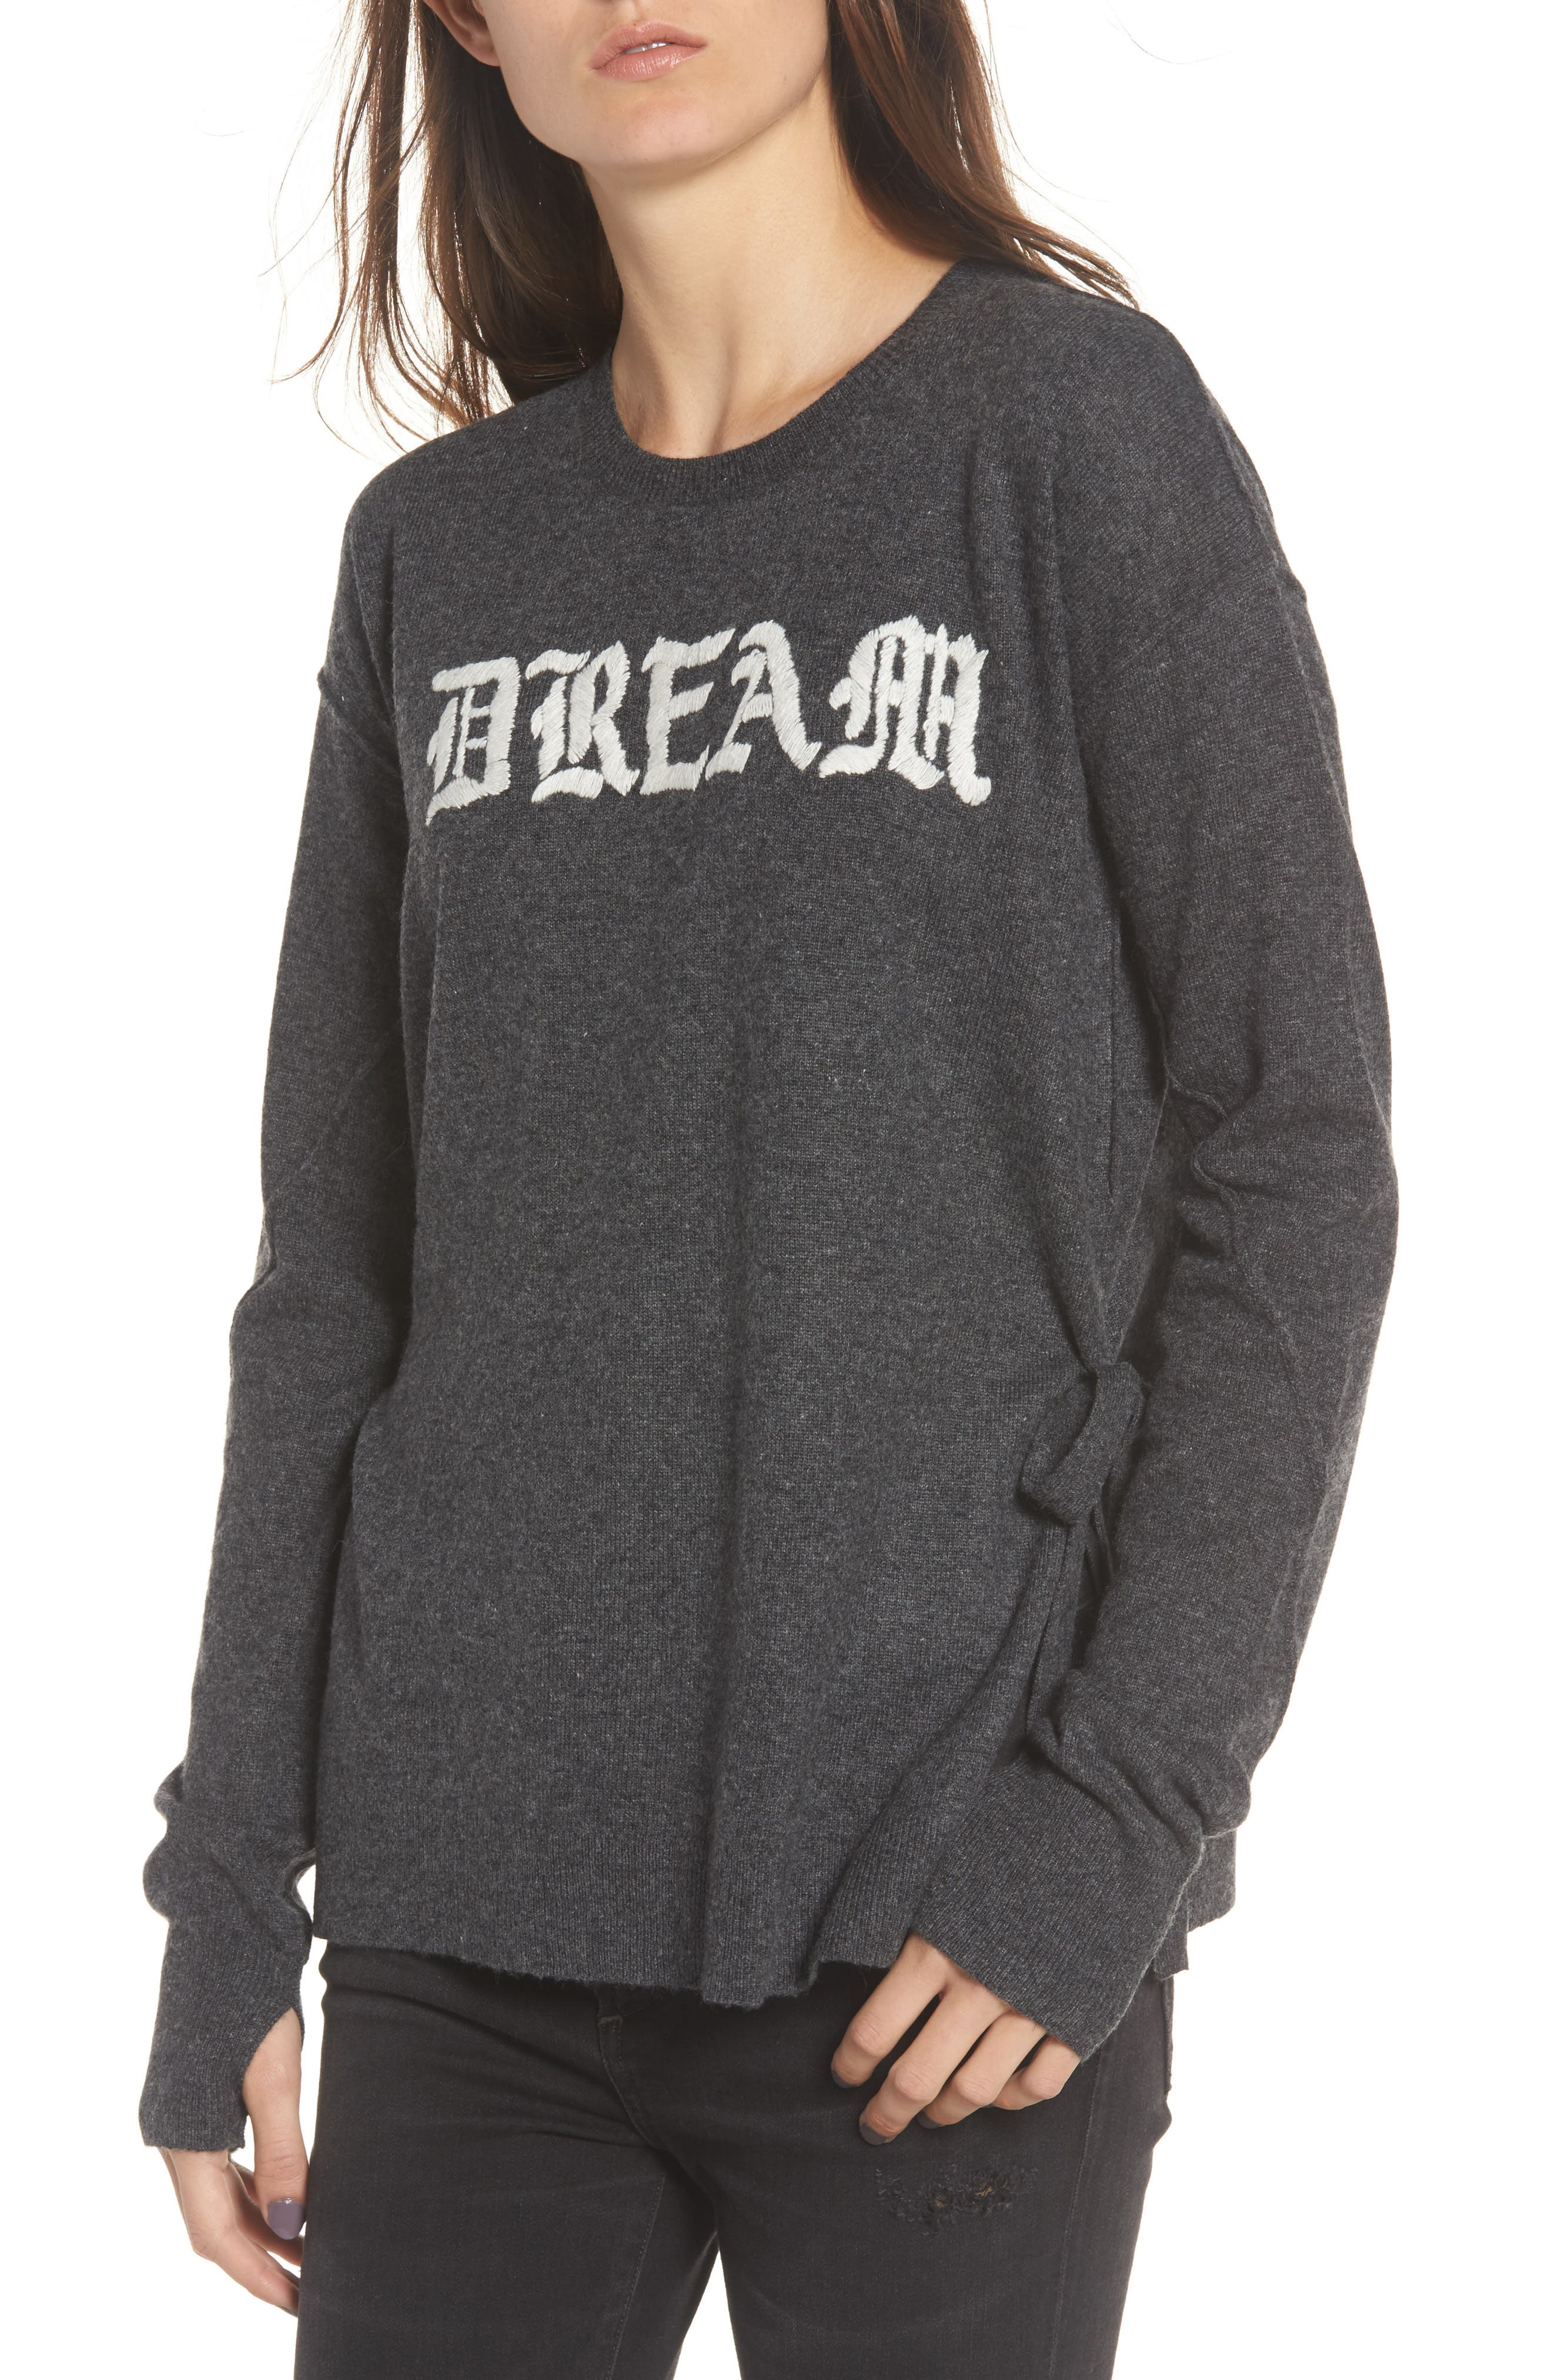 Dream Side Tie Sweater,                             Main thumbnail 1, color,                             Heather Grey